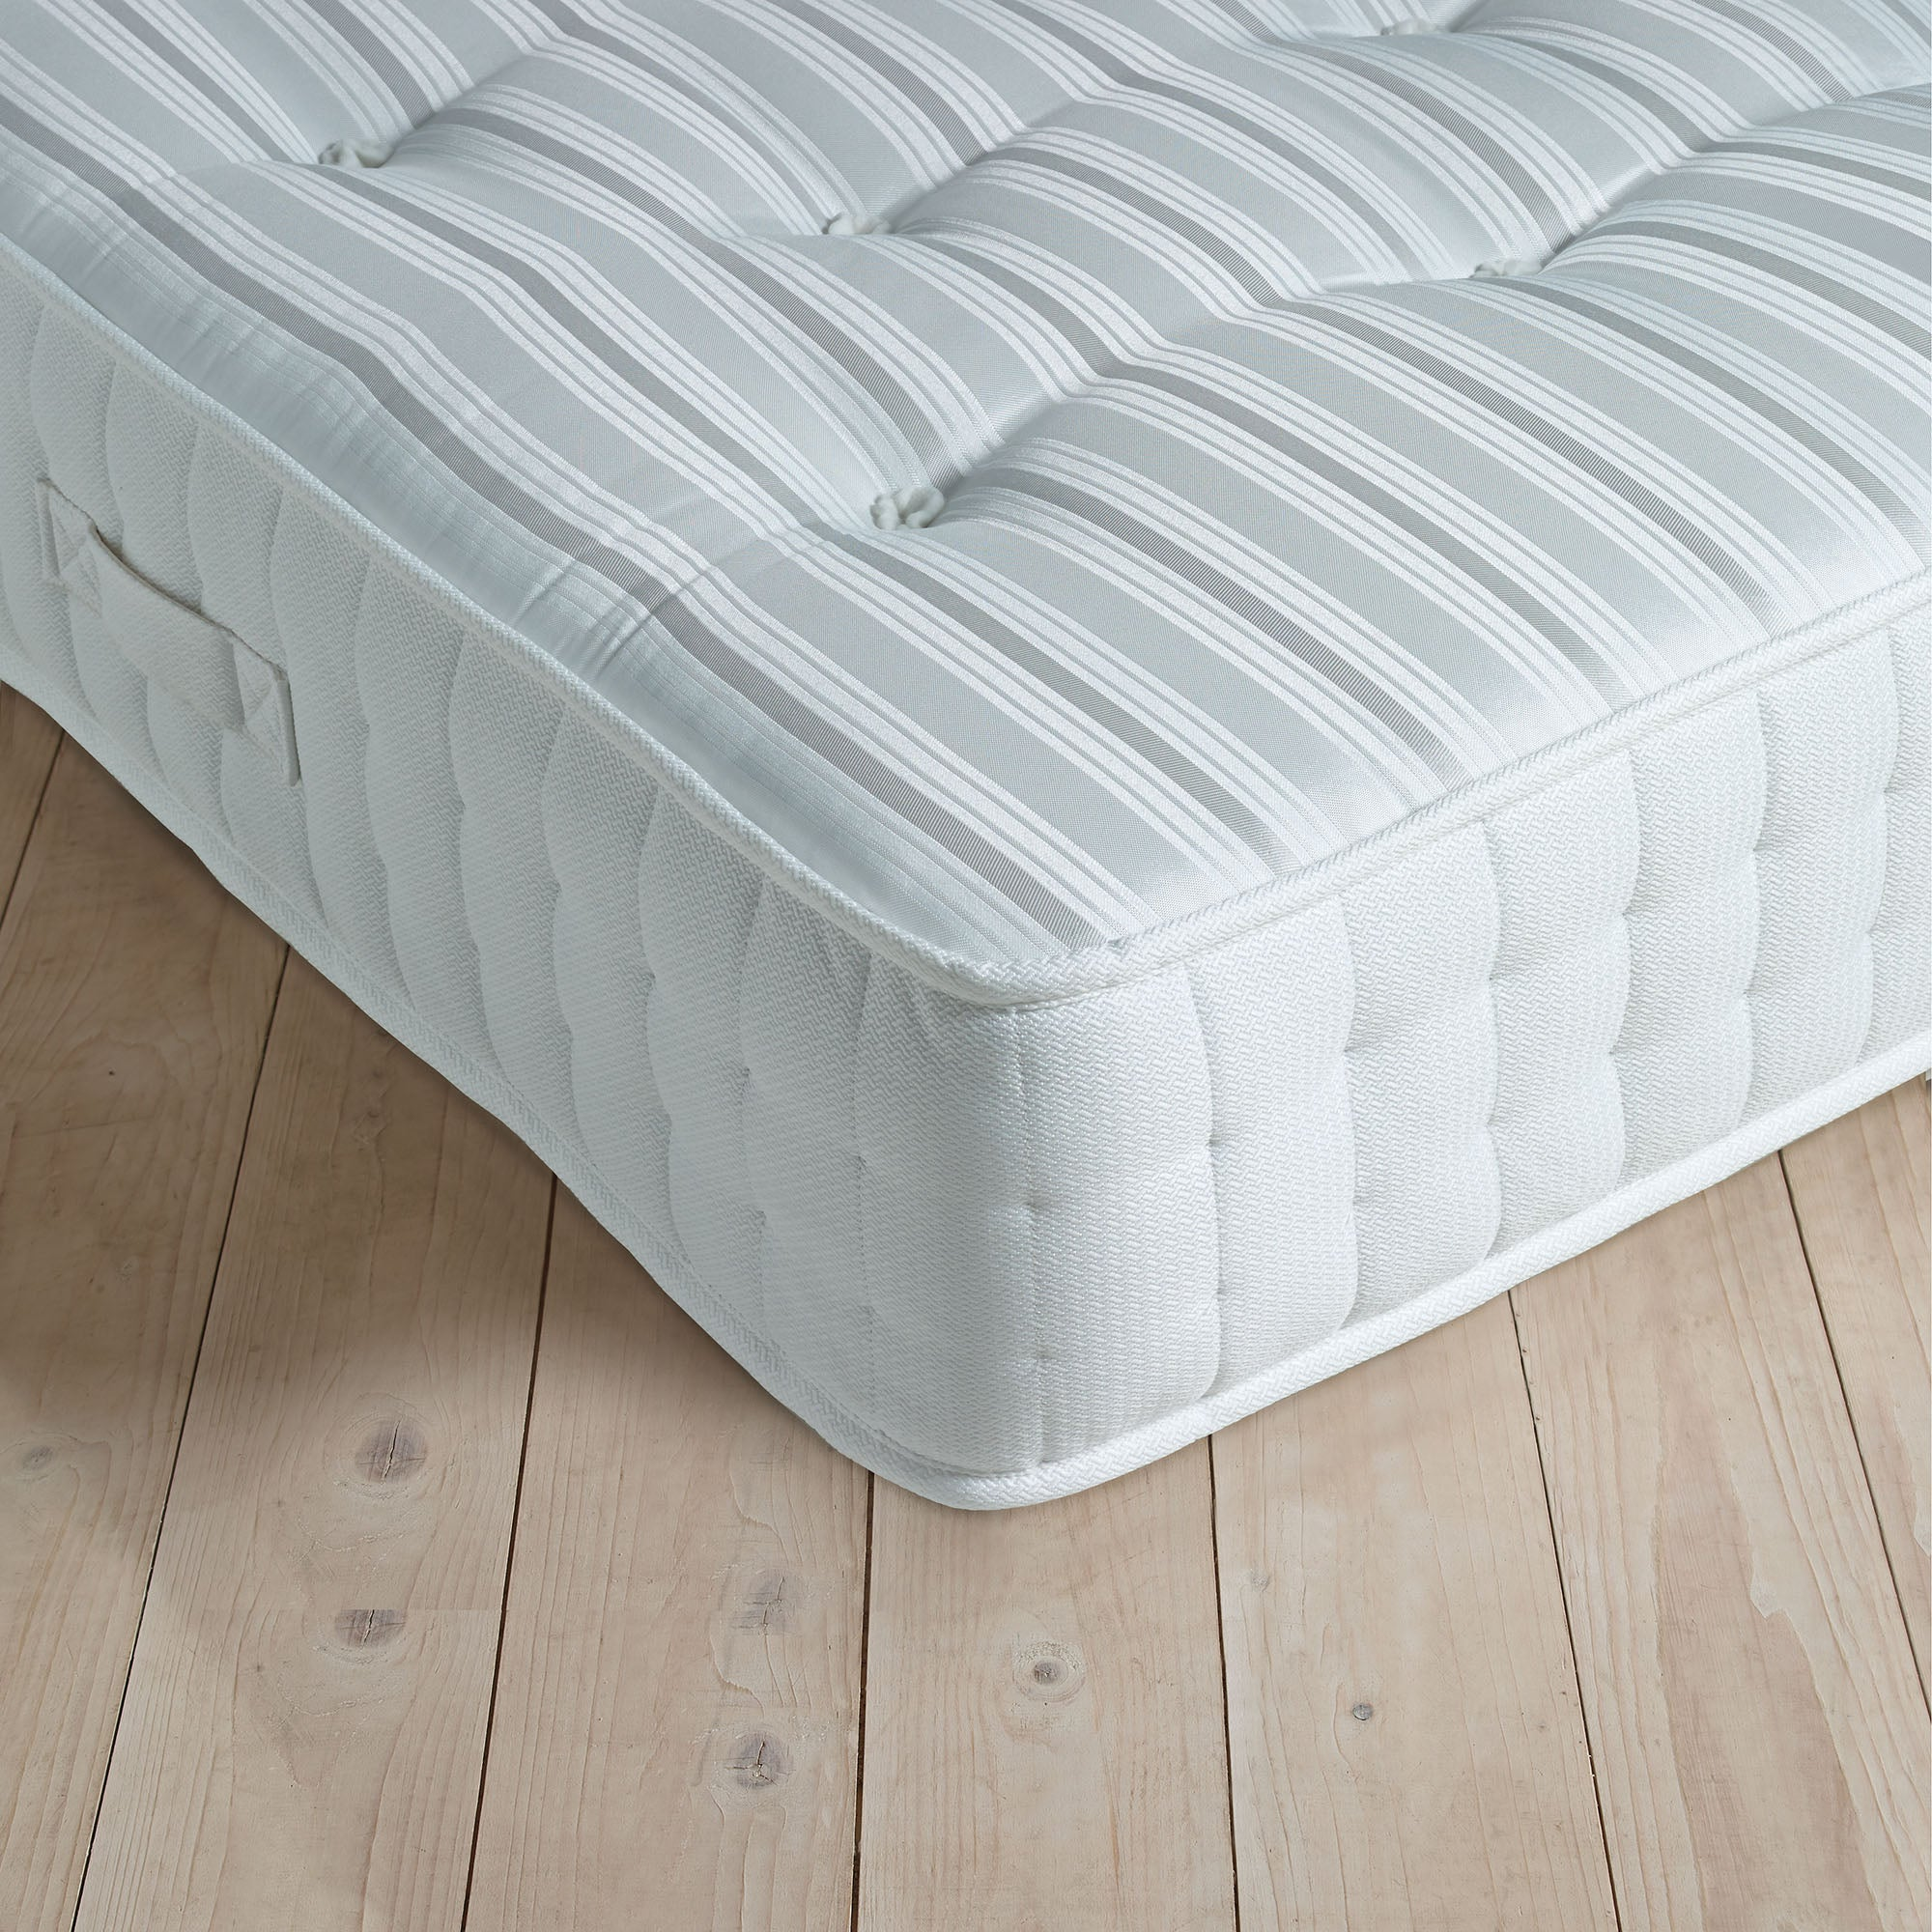 Image of Fogarty Orthopaedic 2000 Pocket Spring Mattress White